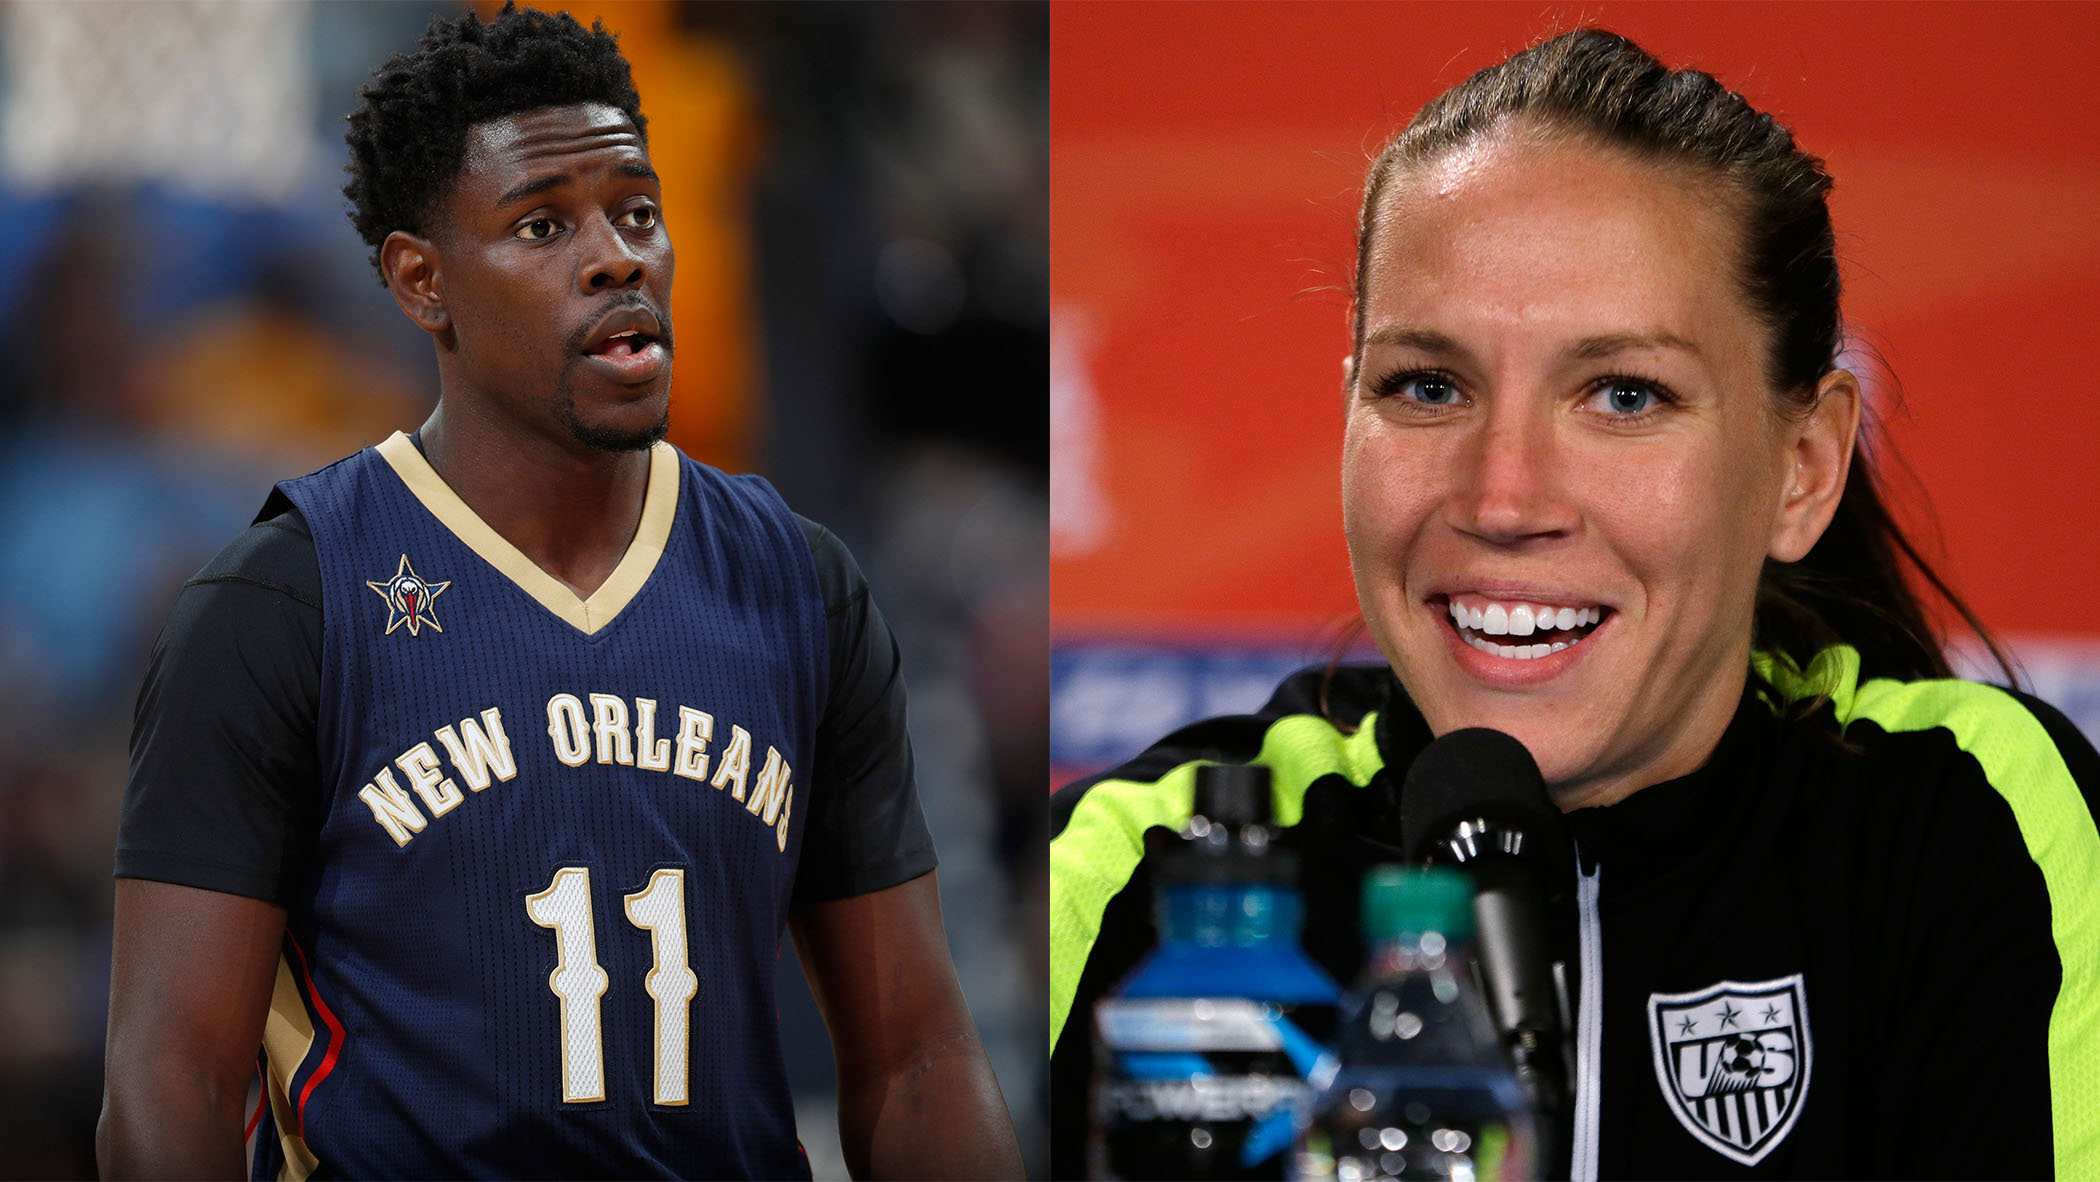 Jrue Holiday and Lauren Cheney were married in 2013.